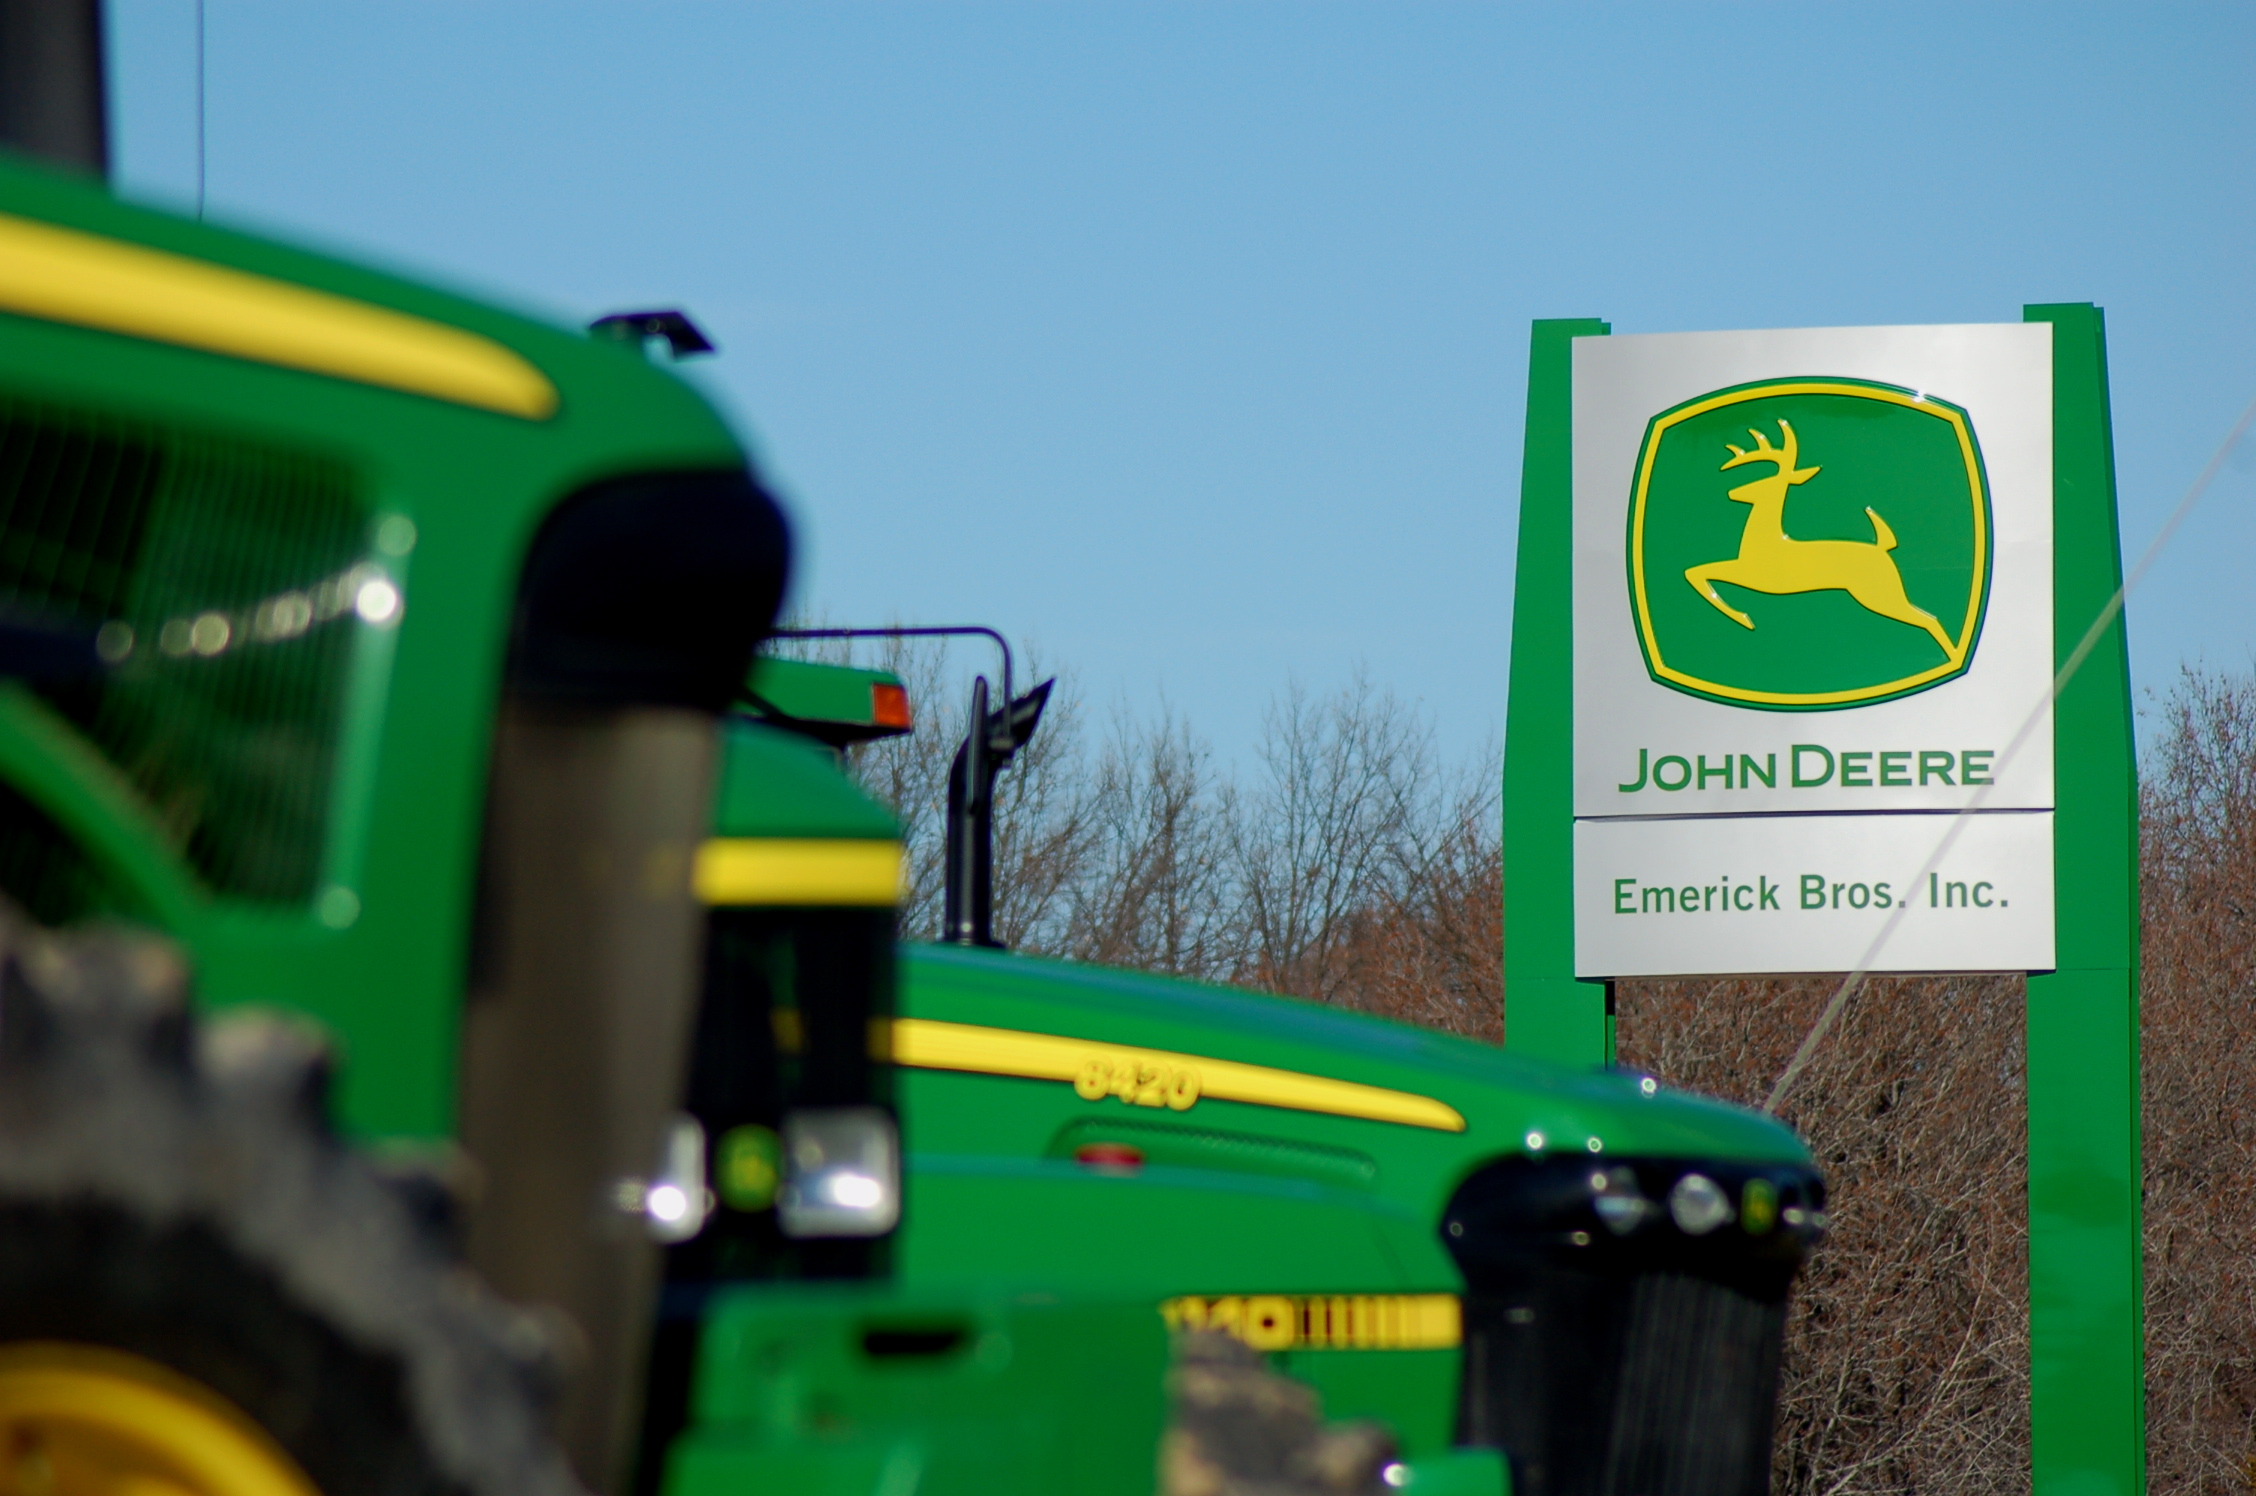 John Deere Dealership Sign